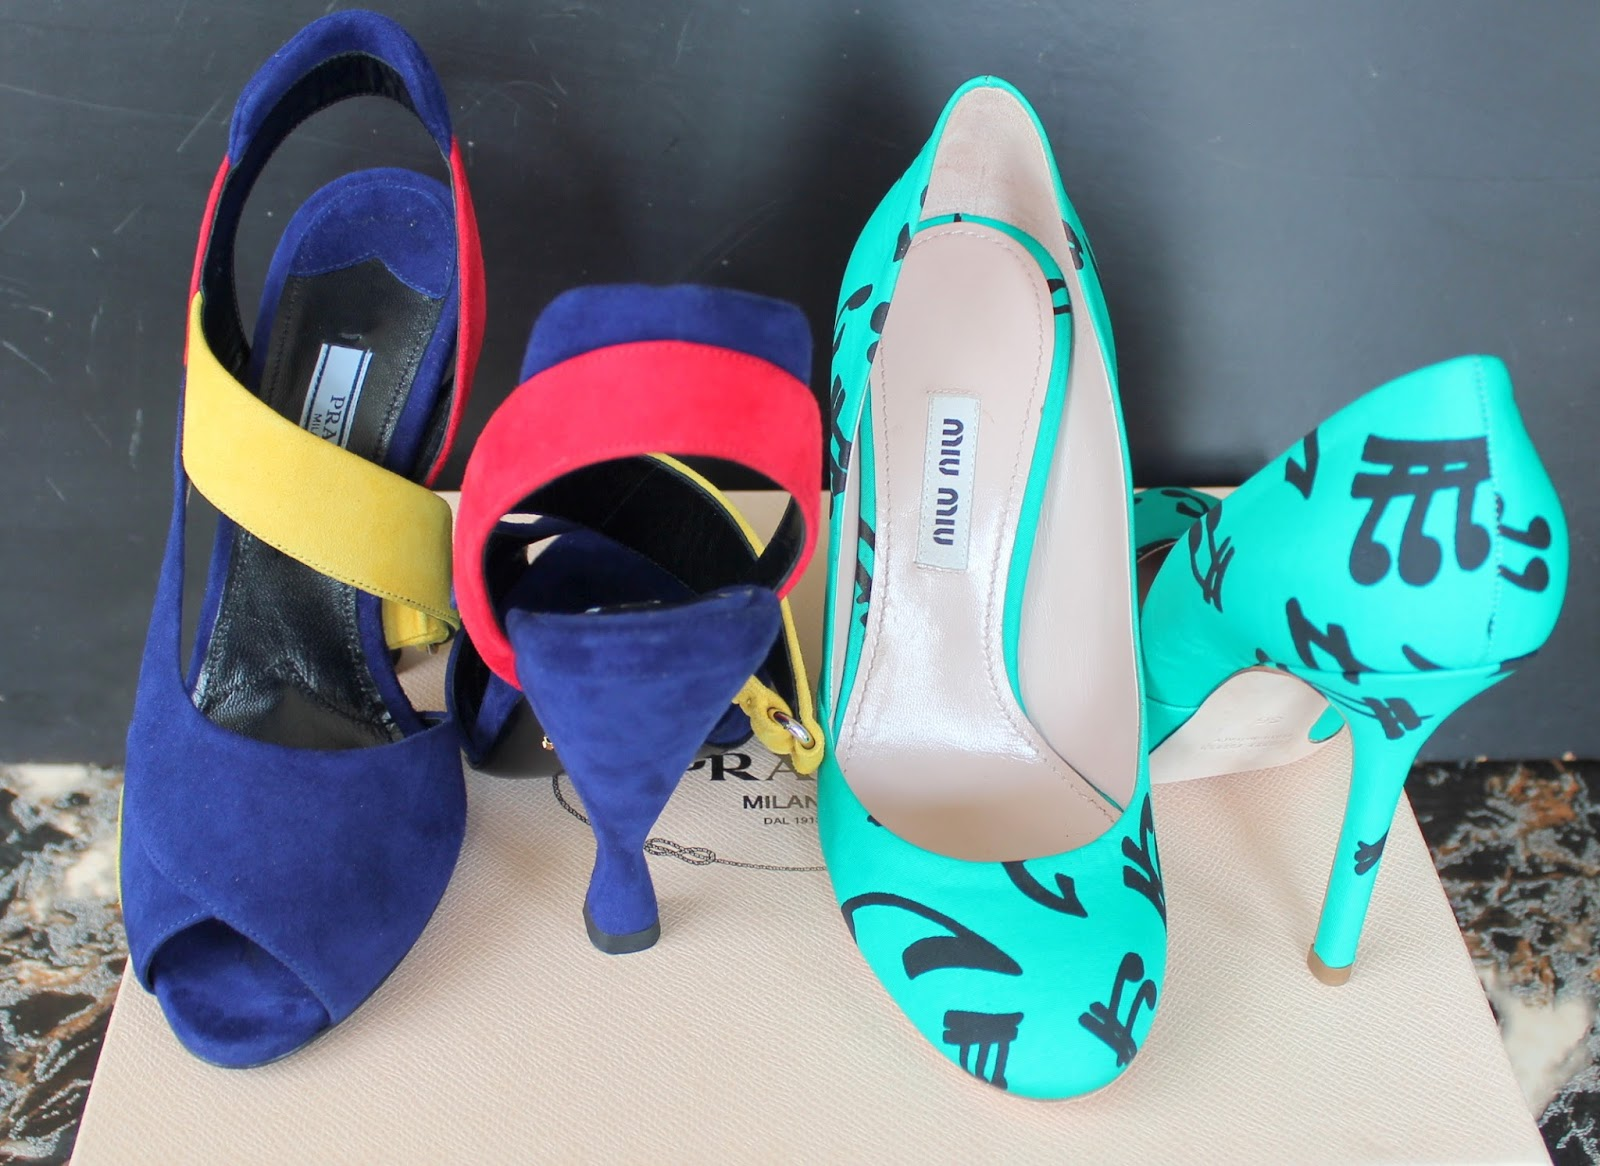 Designer Shoes - Prada color block heels and Miu Miu Musical Notes Pumps